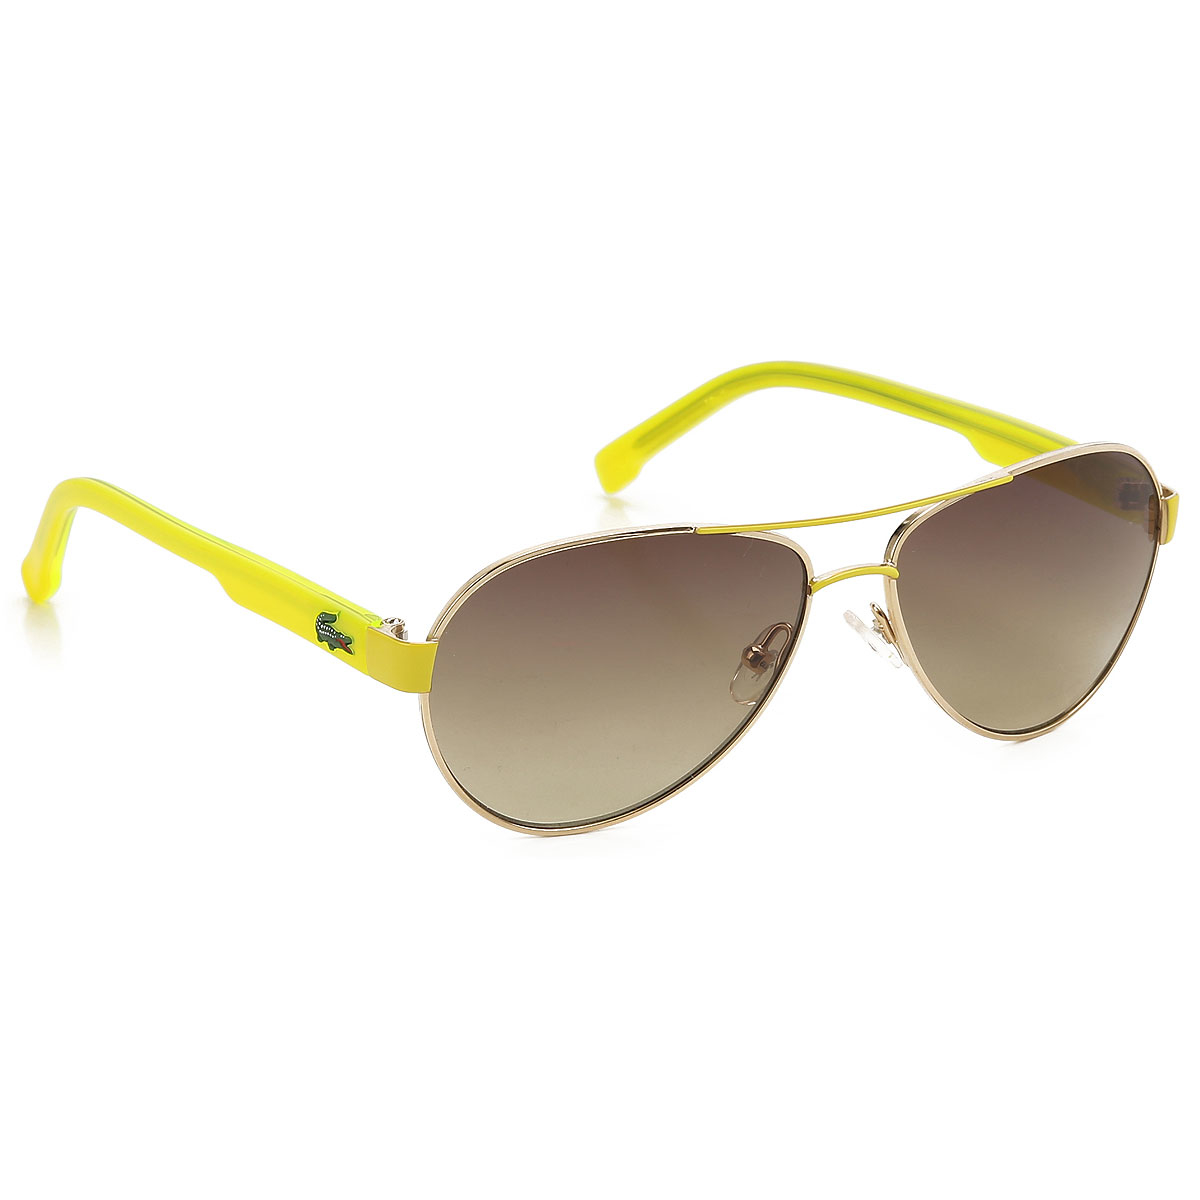 Lacoste Kids Sunglasses for Boys On Sale fluo yellow DK - GOOFASH - Mens SUNGLASSES